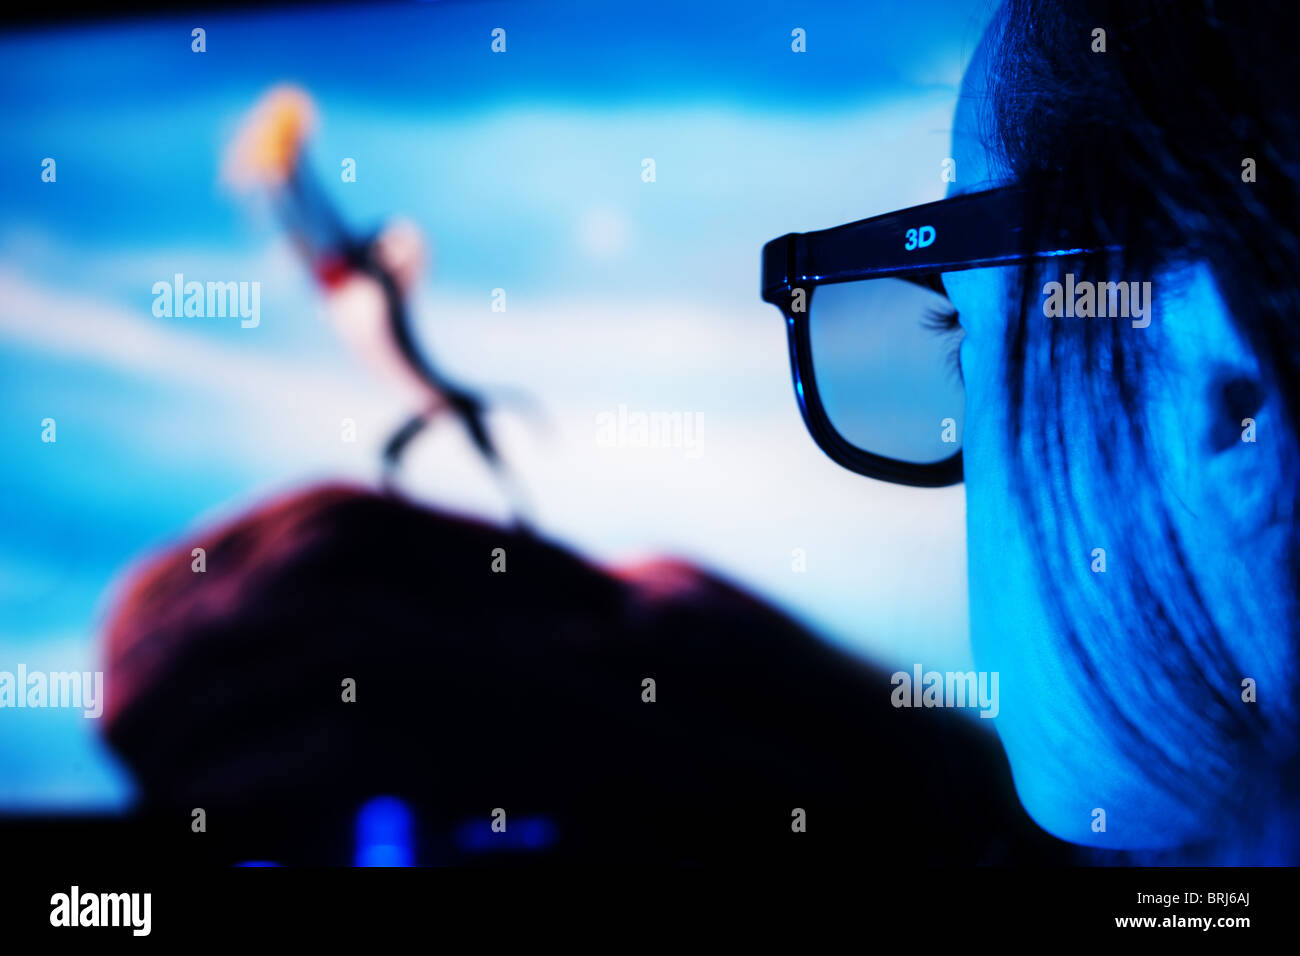 Animation 3D Photo Stock